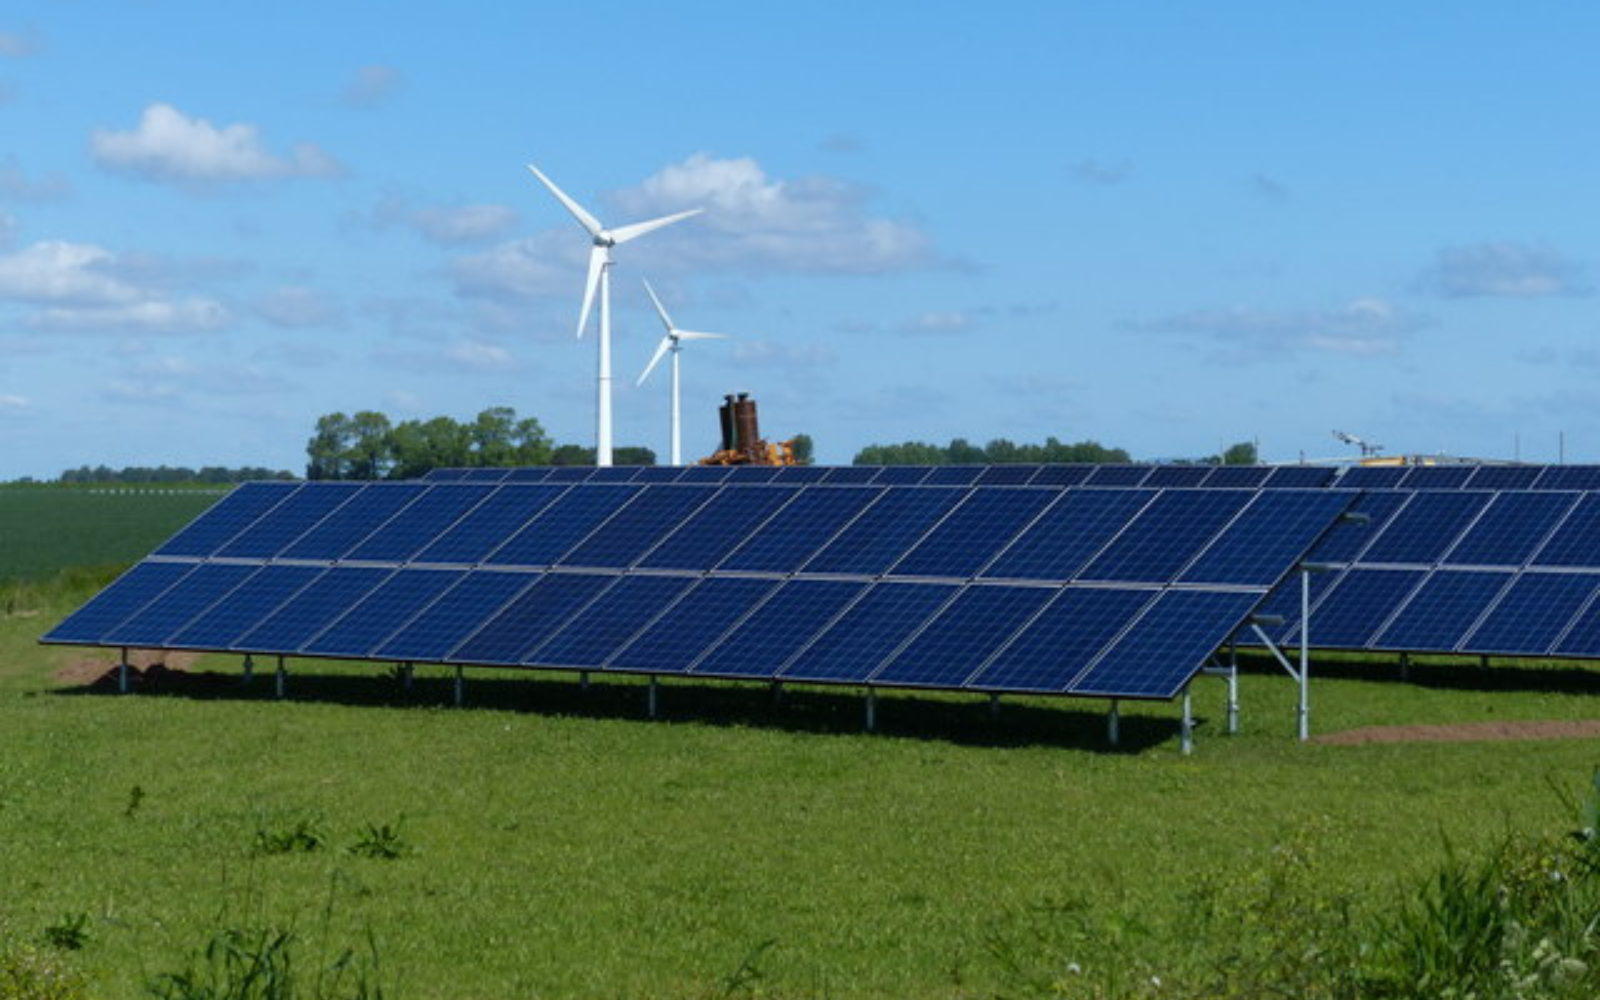 Tech startup receives funds for peer-to-peer online renewable energy trading platfrom